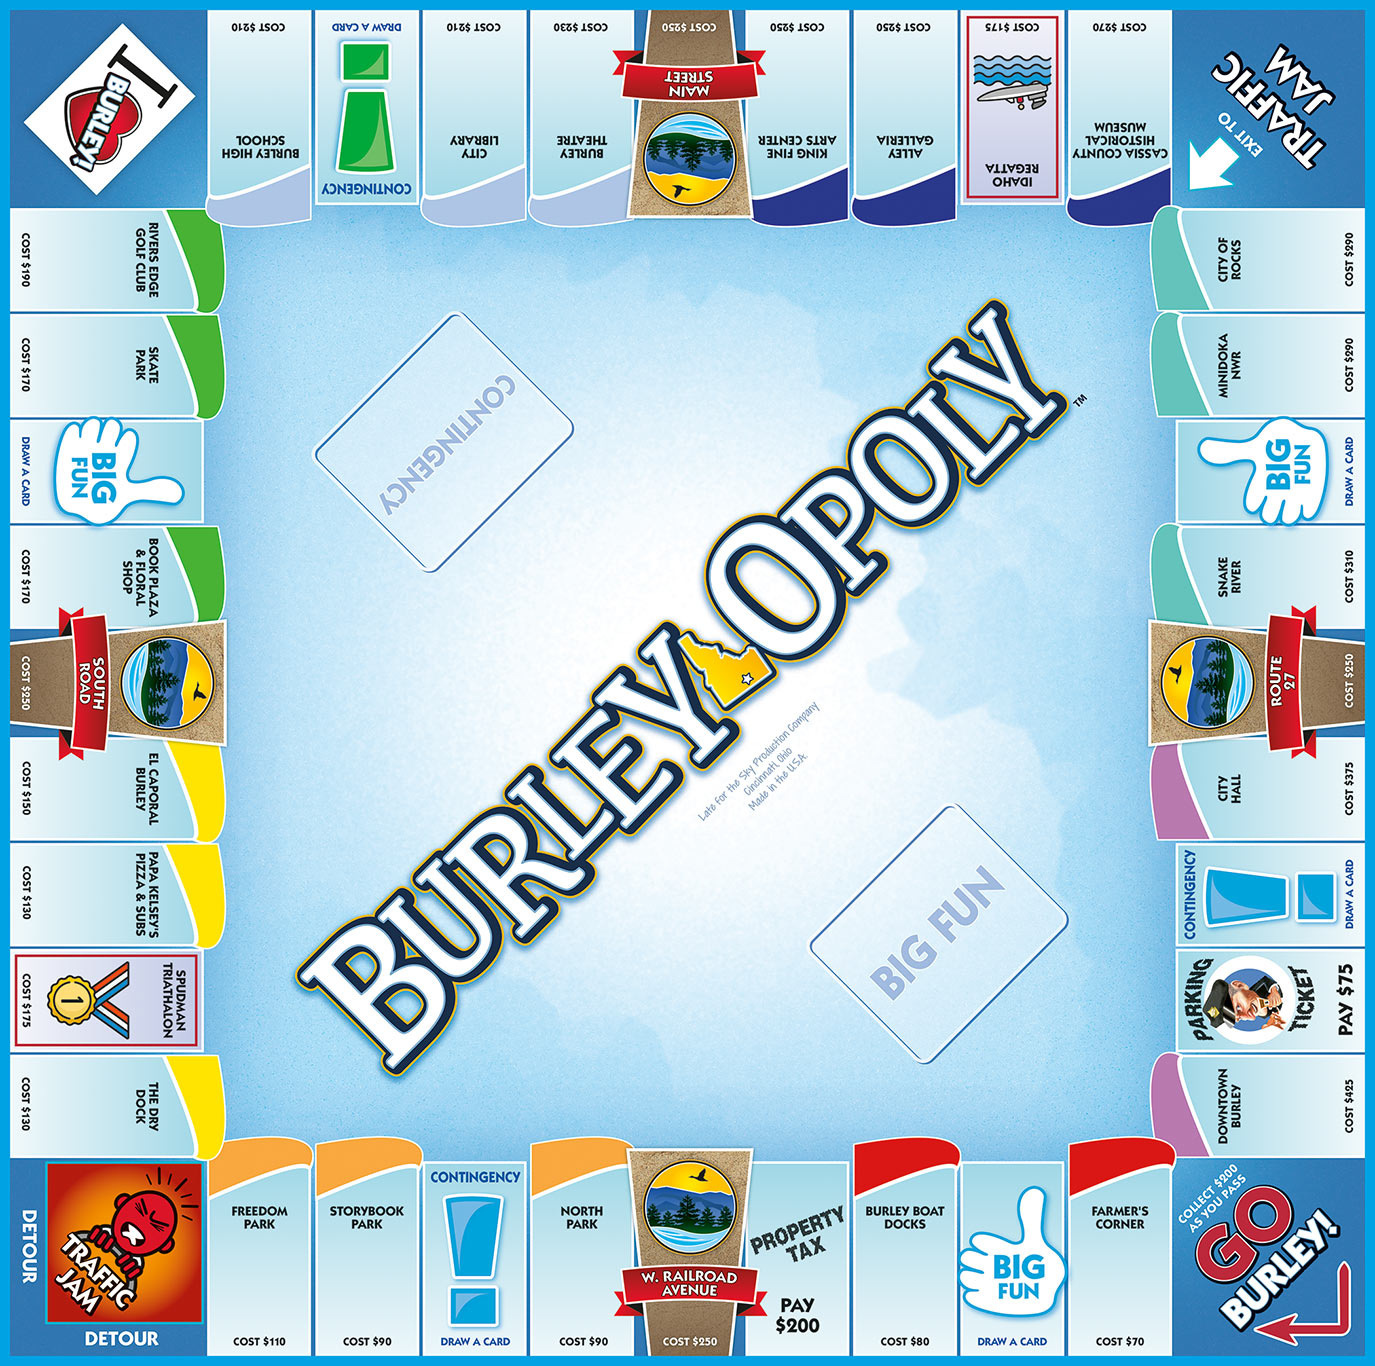 BURLEY-OPOLY Board Game